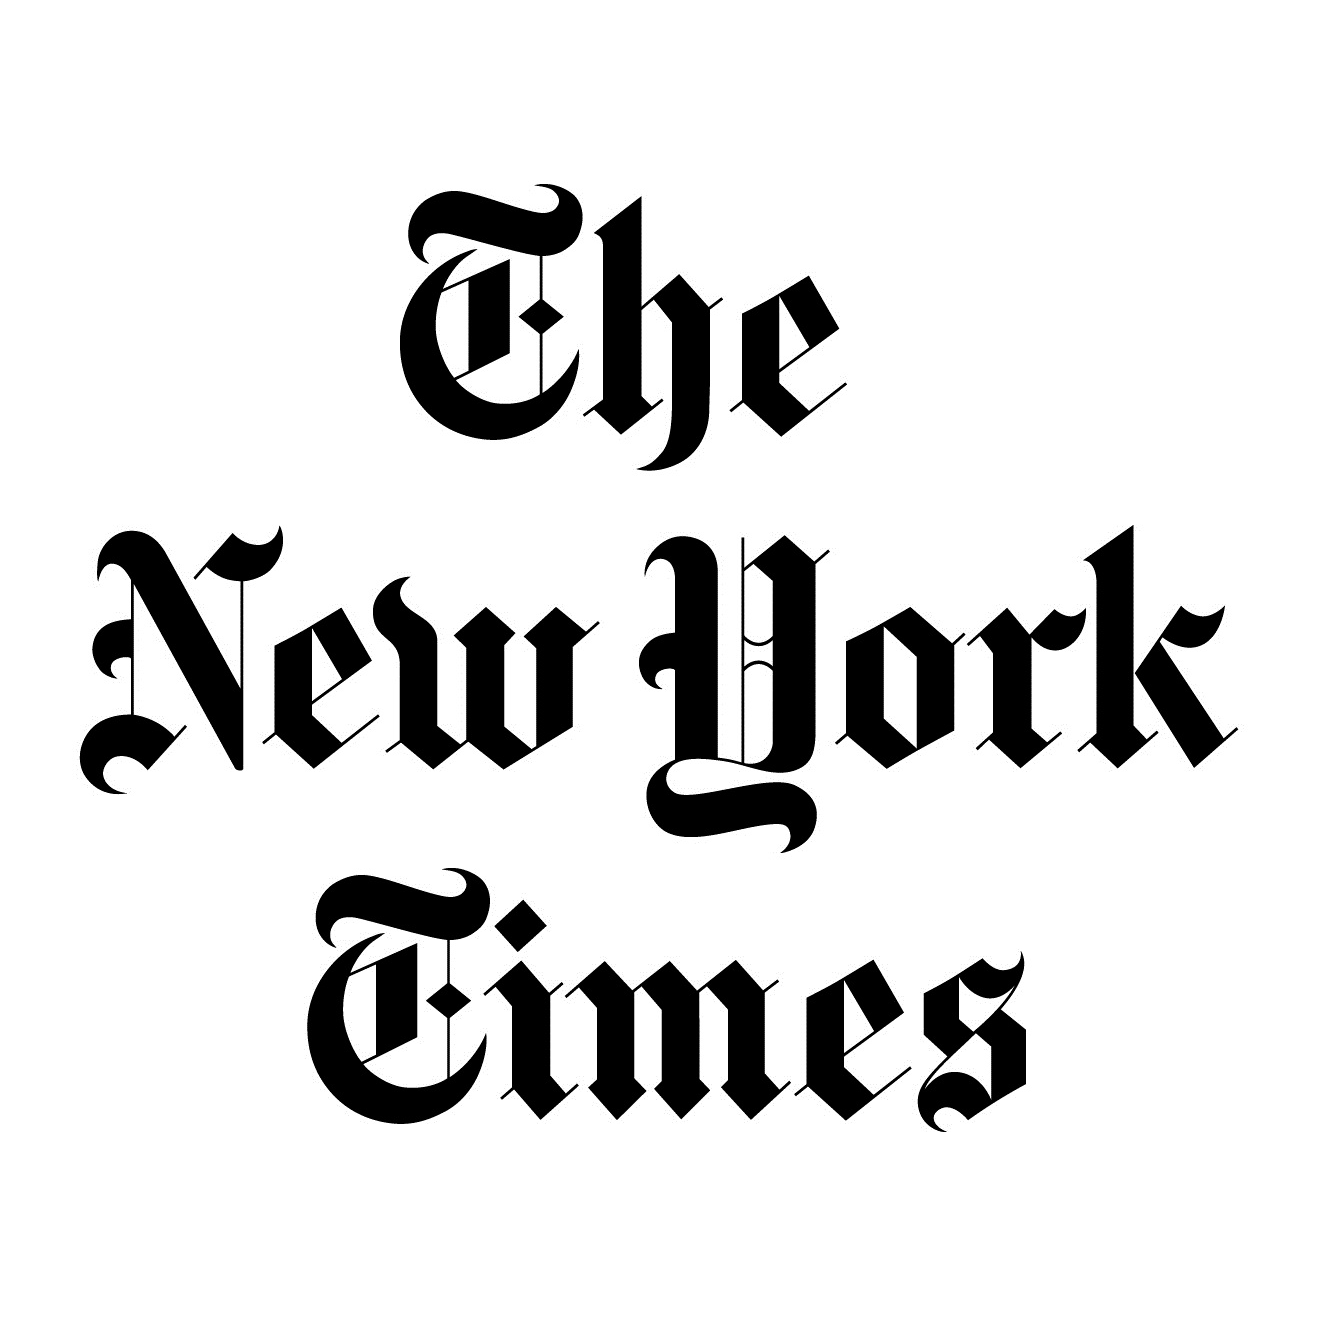 New york times logo png. Ispu